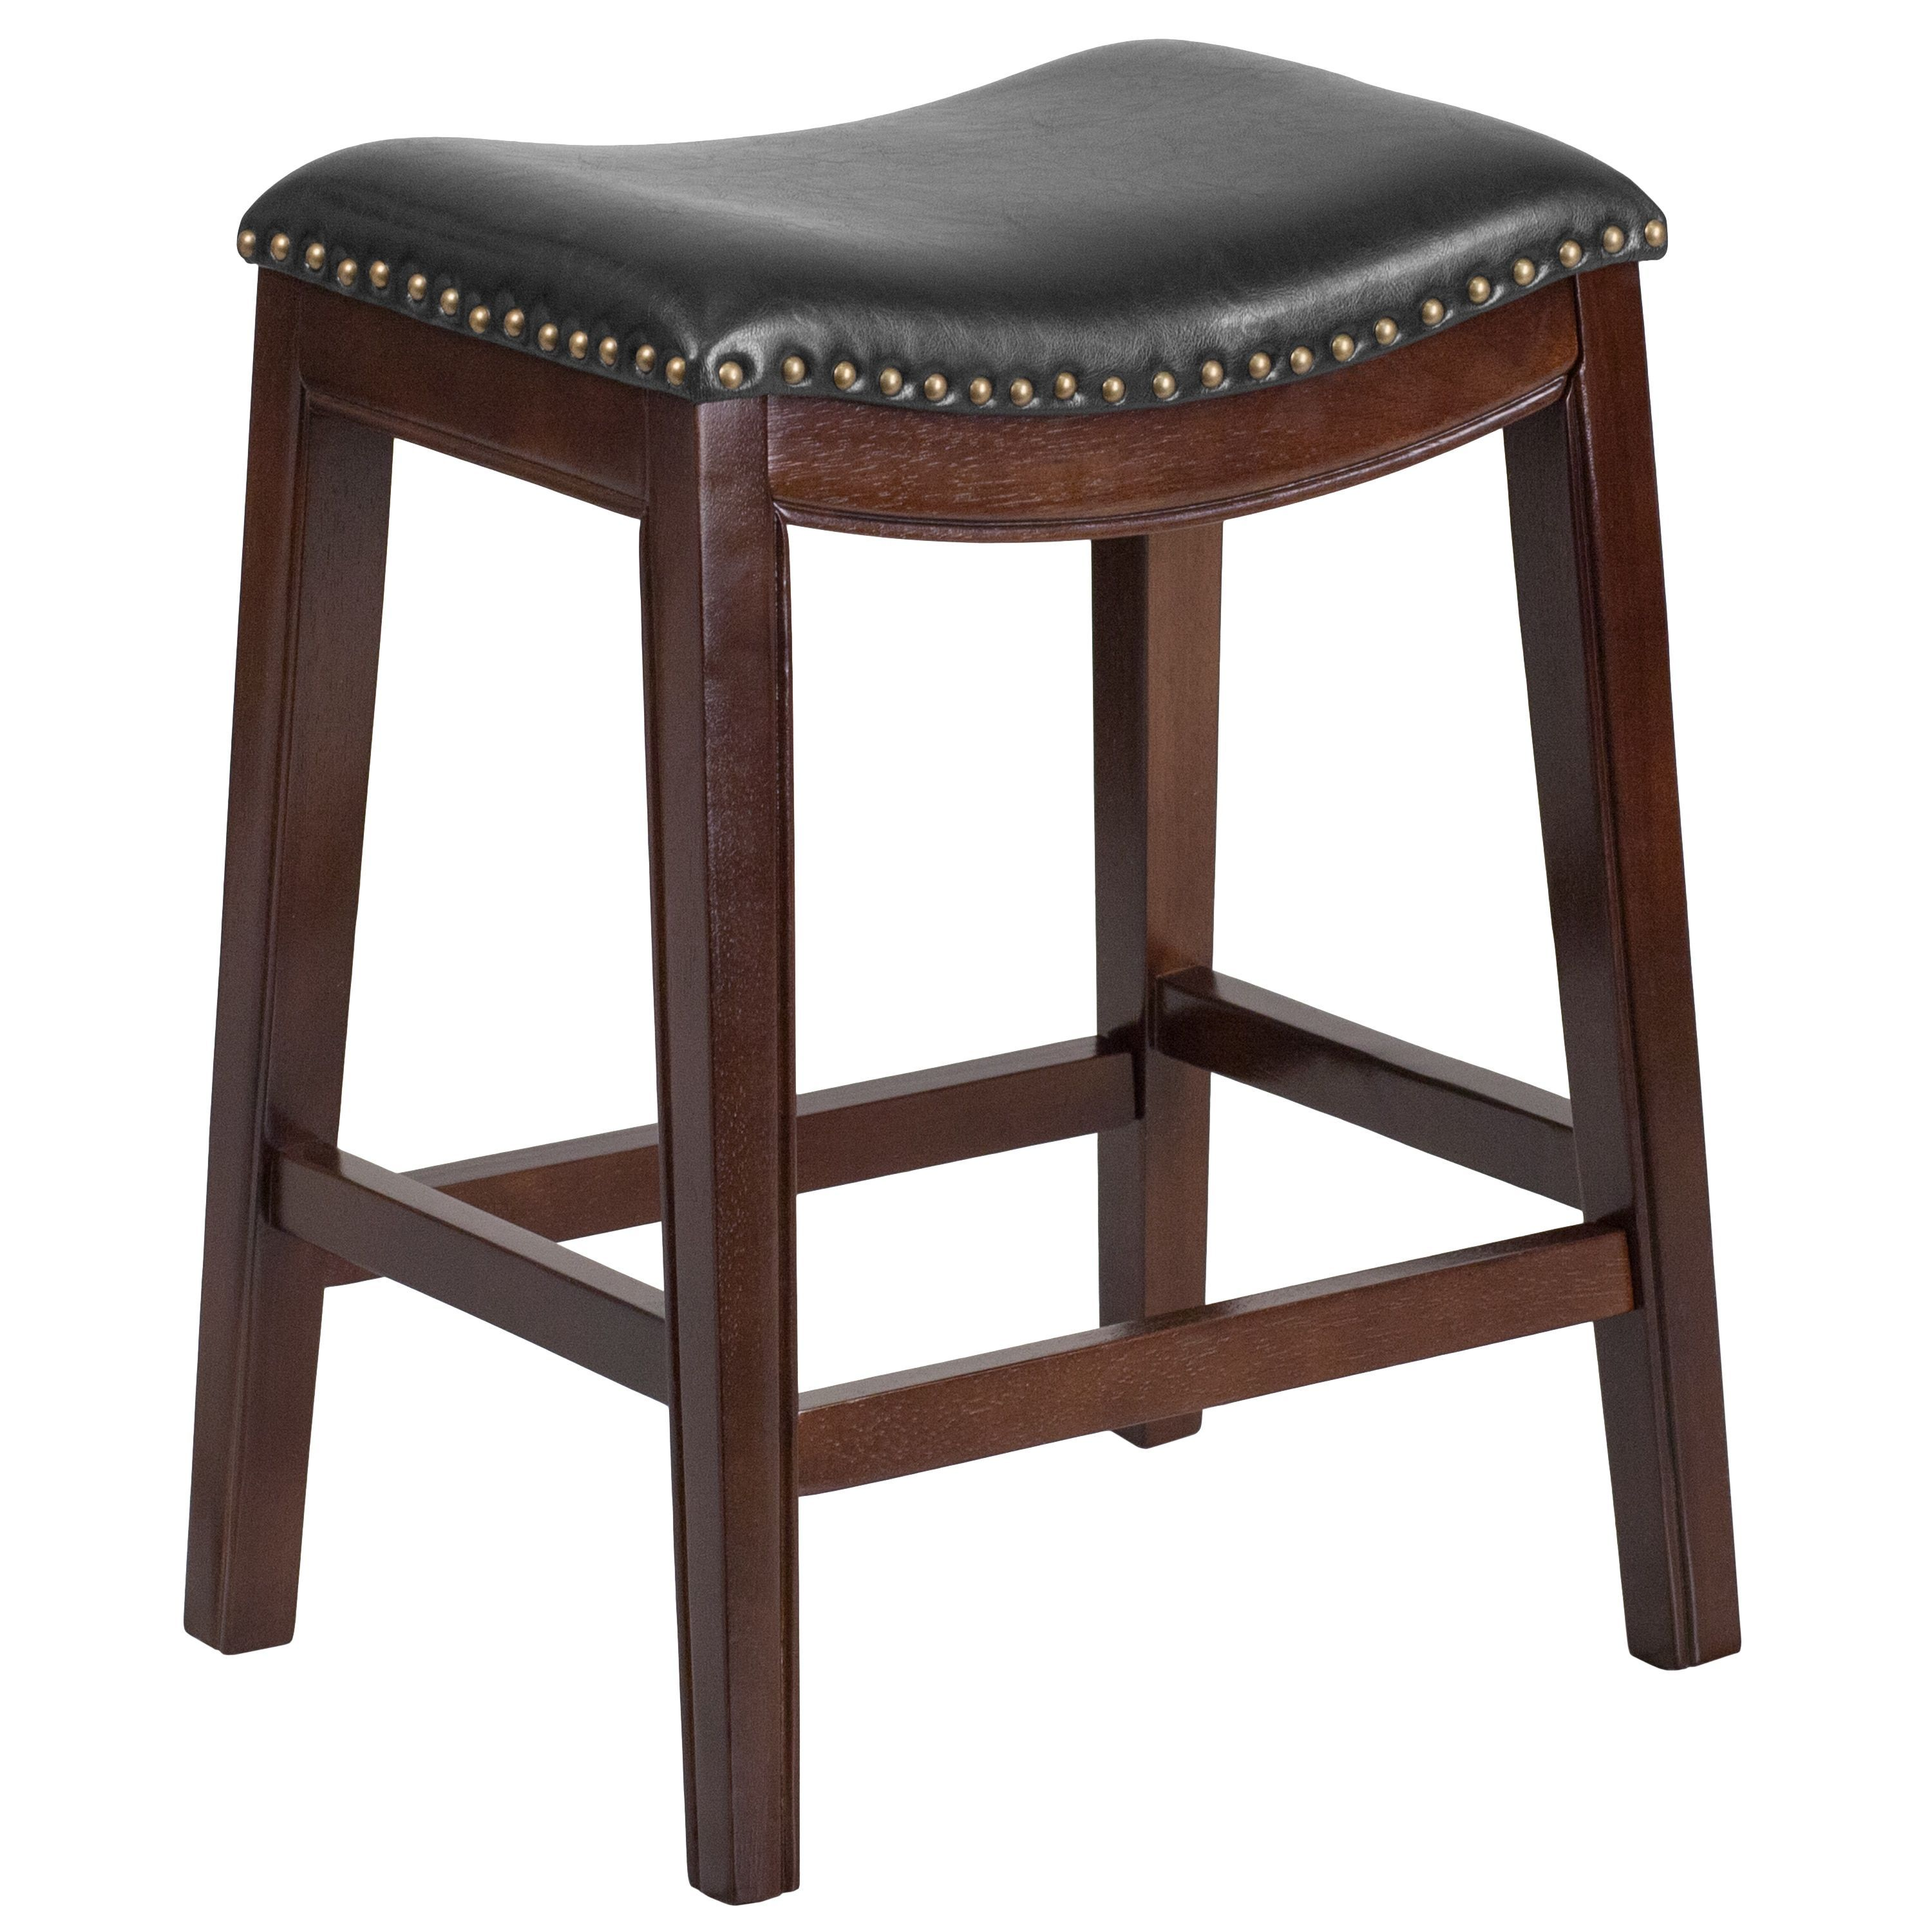 26-inch Backless Wood Counter Height Stool with Leather Seat (Black ...